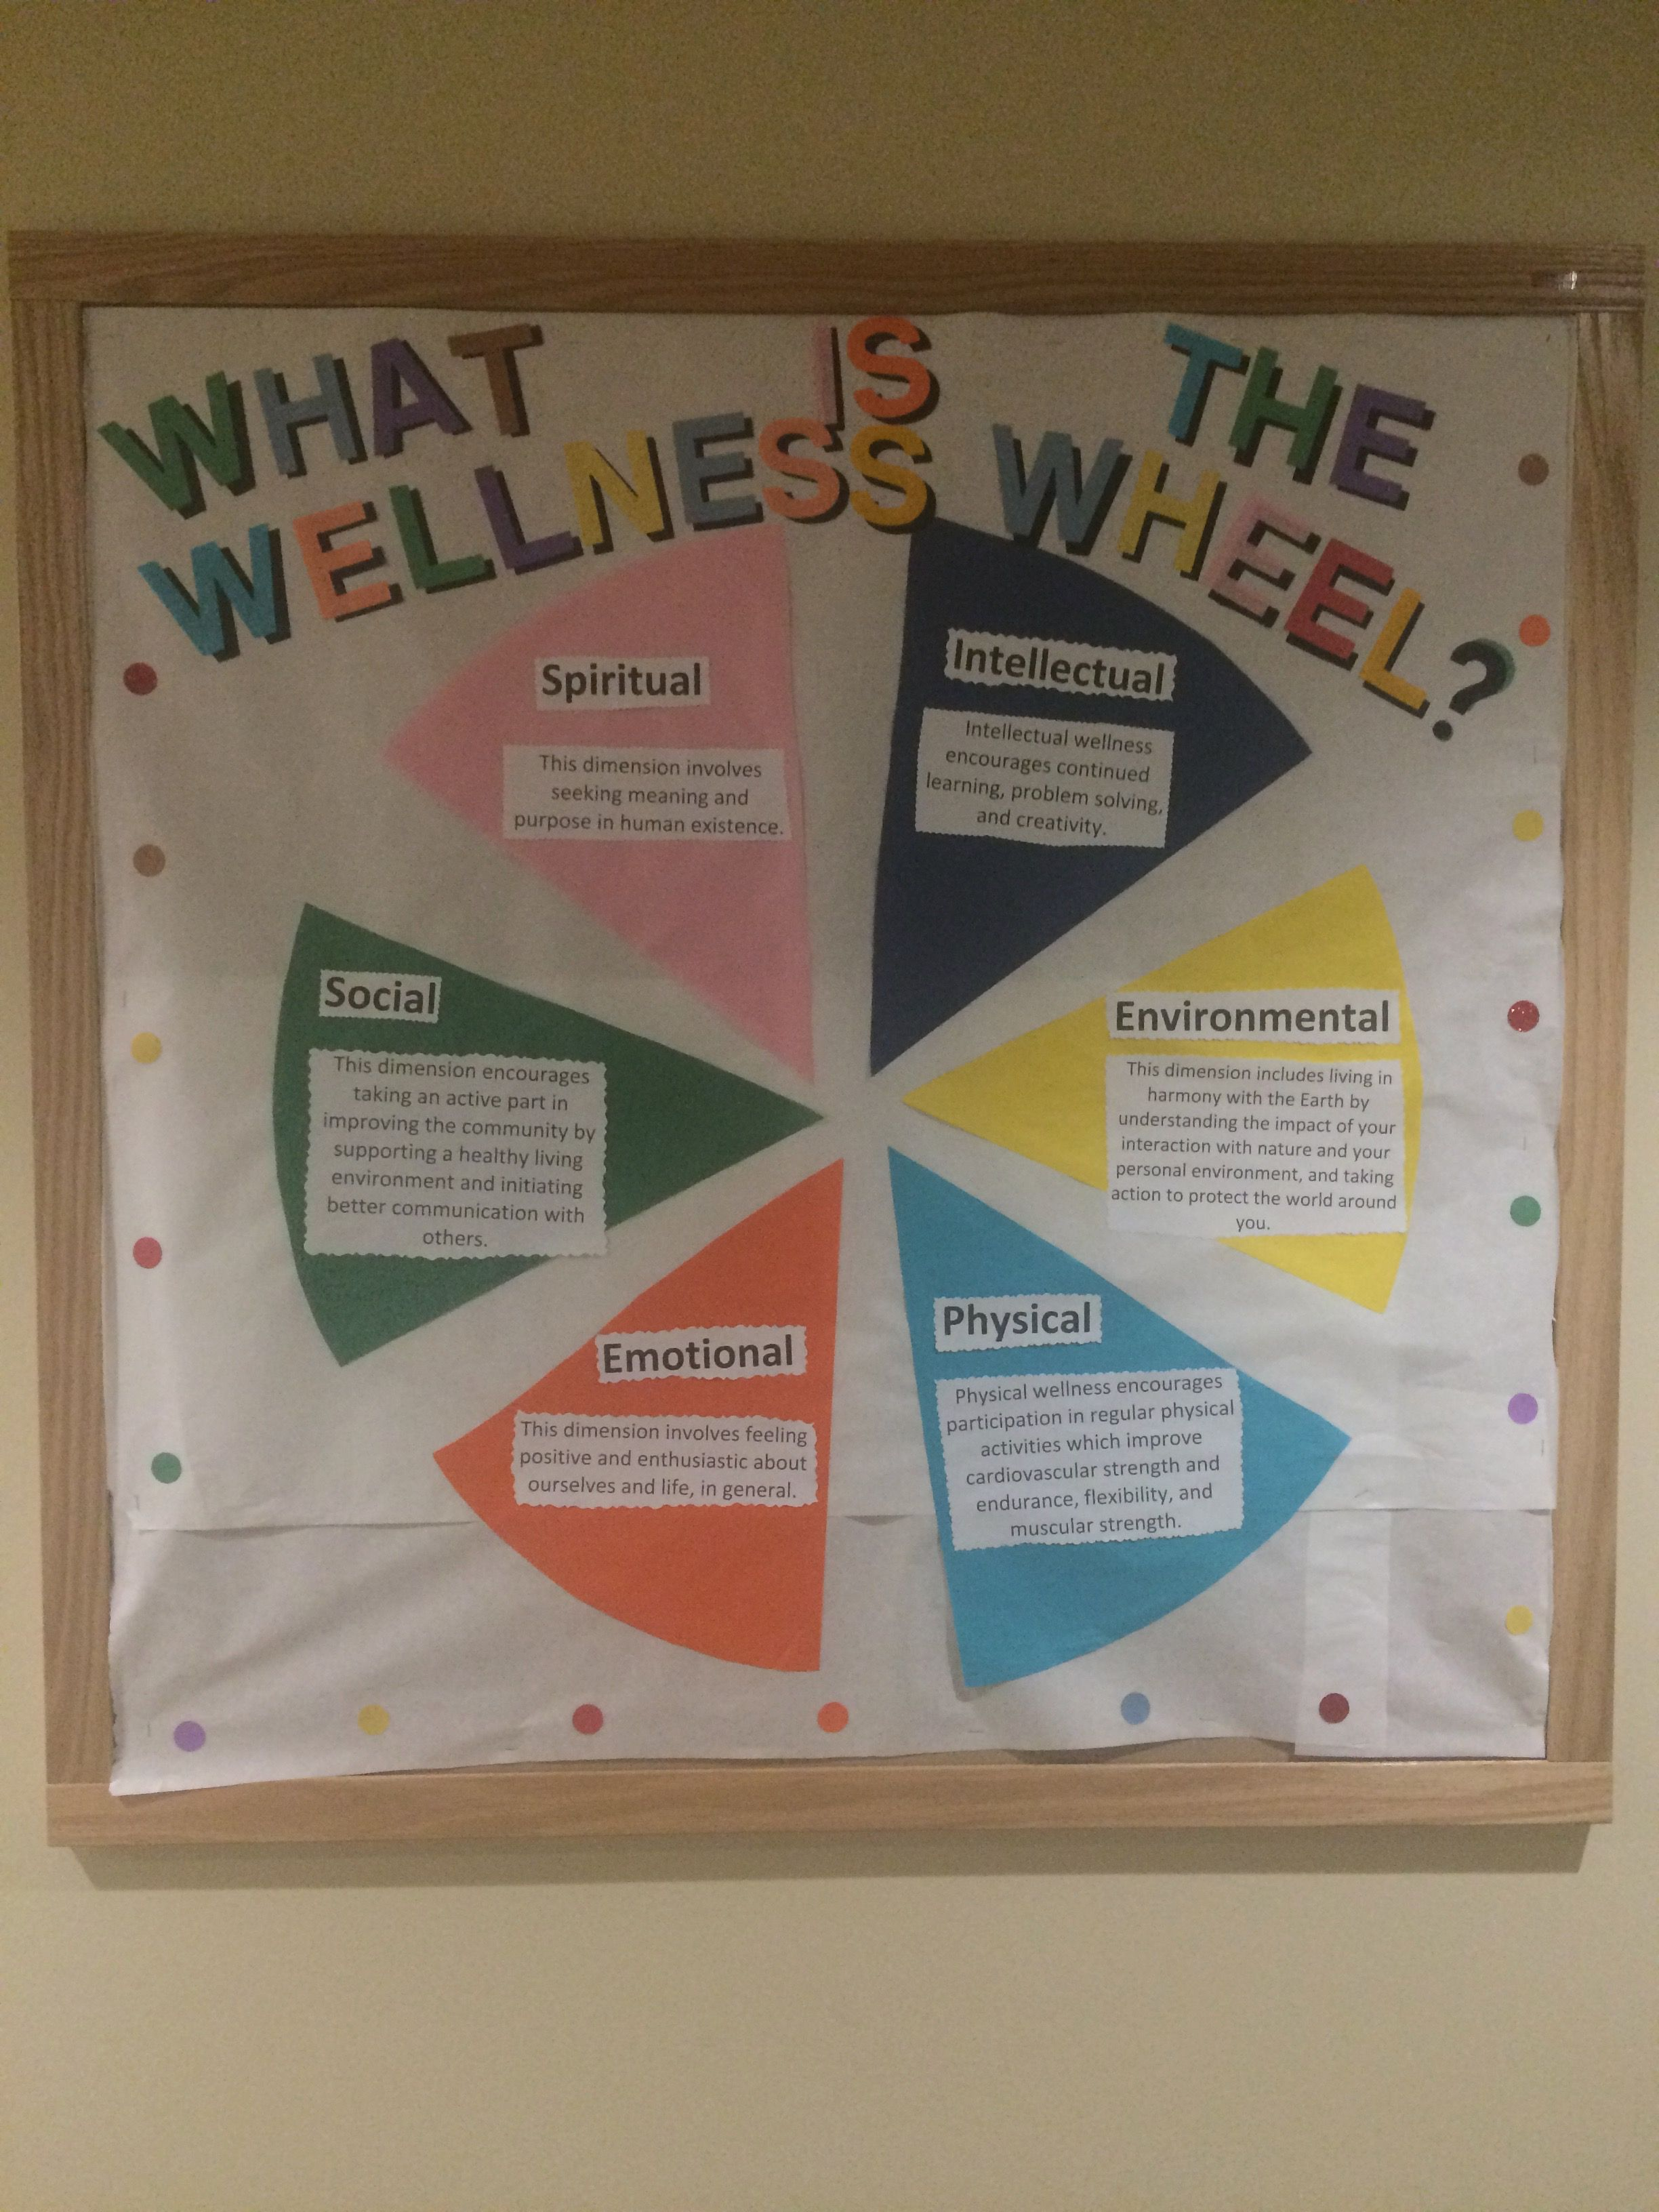 Health & Wellness wheel RA bulletin board University of Illinois at Urbana-Champaign Wassaja Hall #rabulletinboards